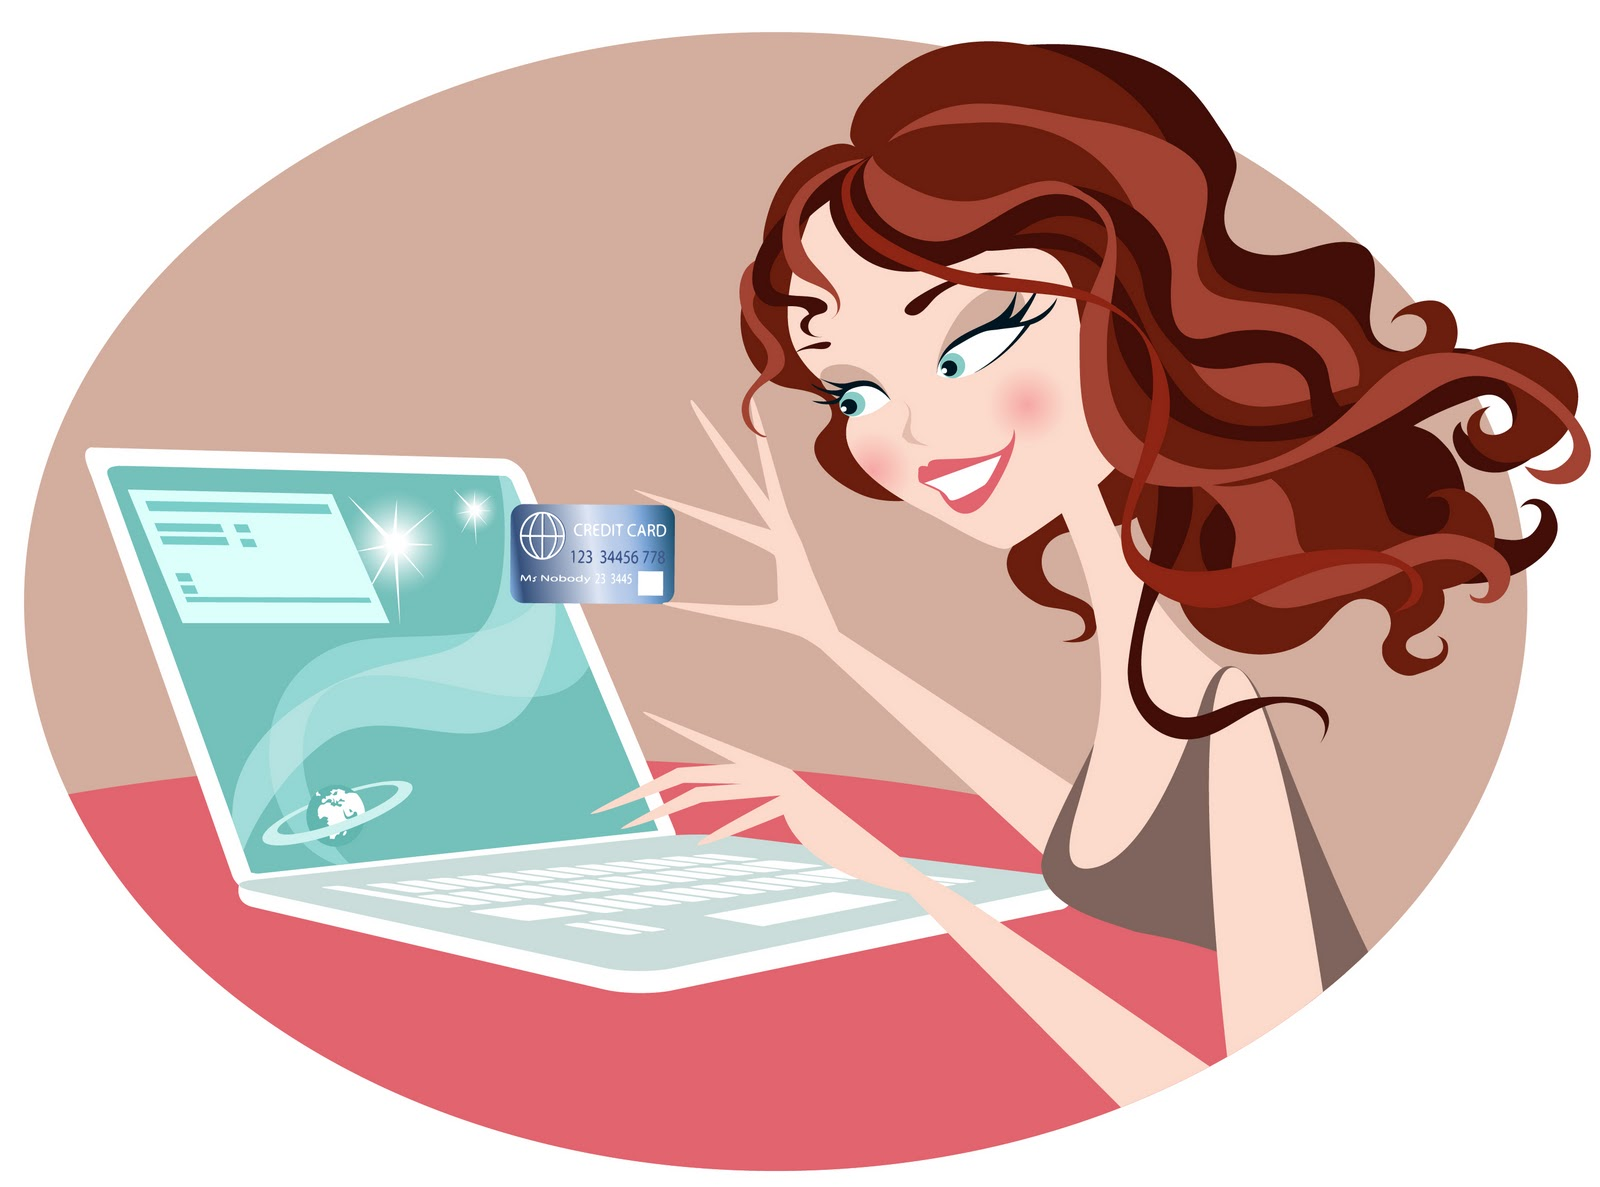 Online-shopping-girl-illustration.jpg